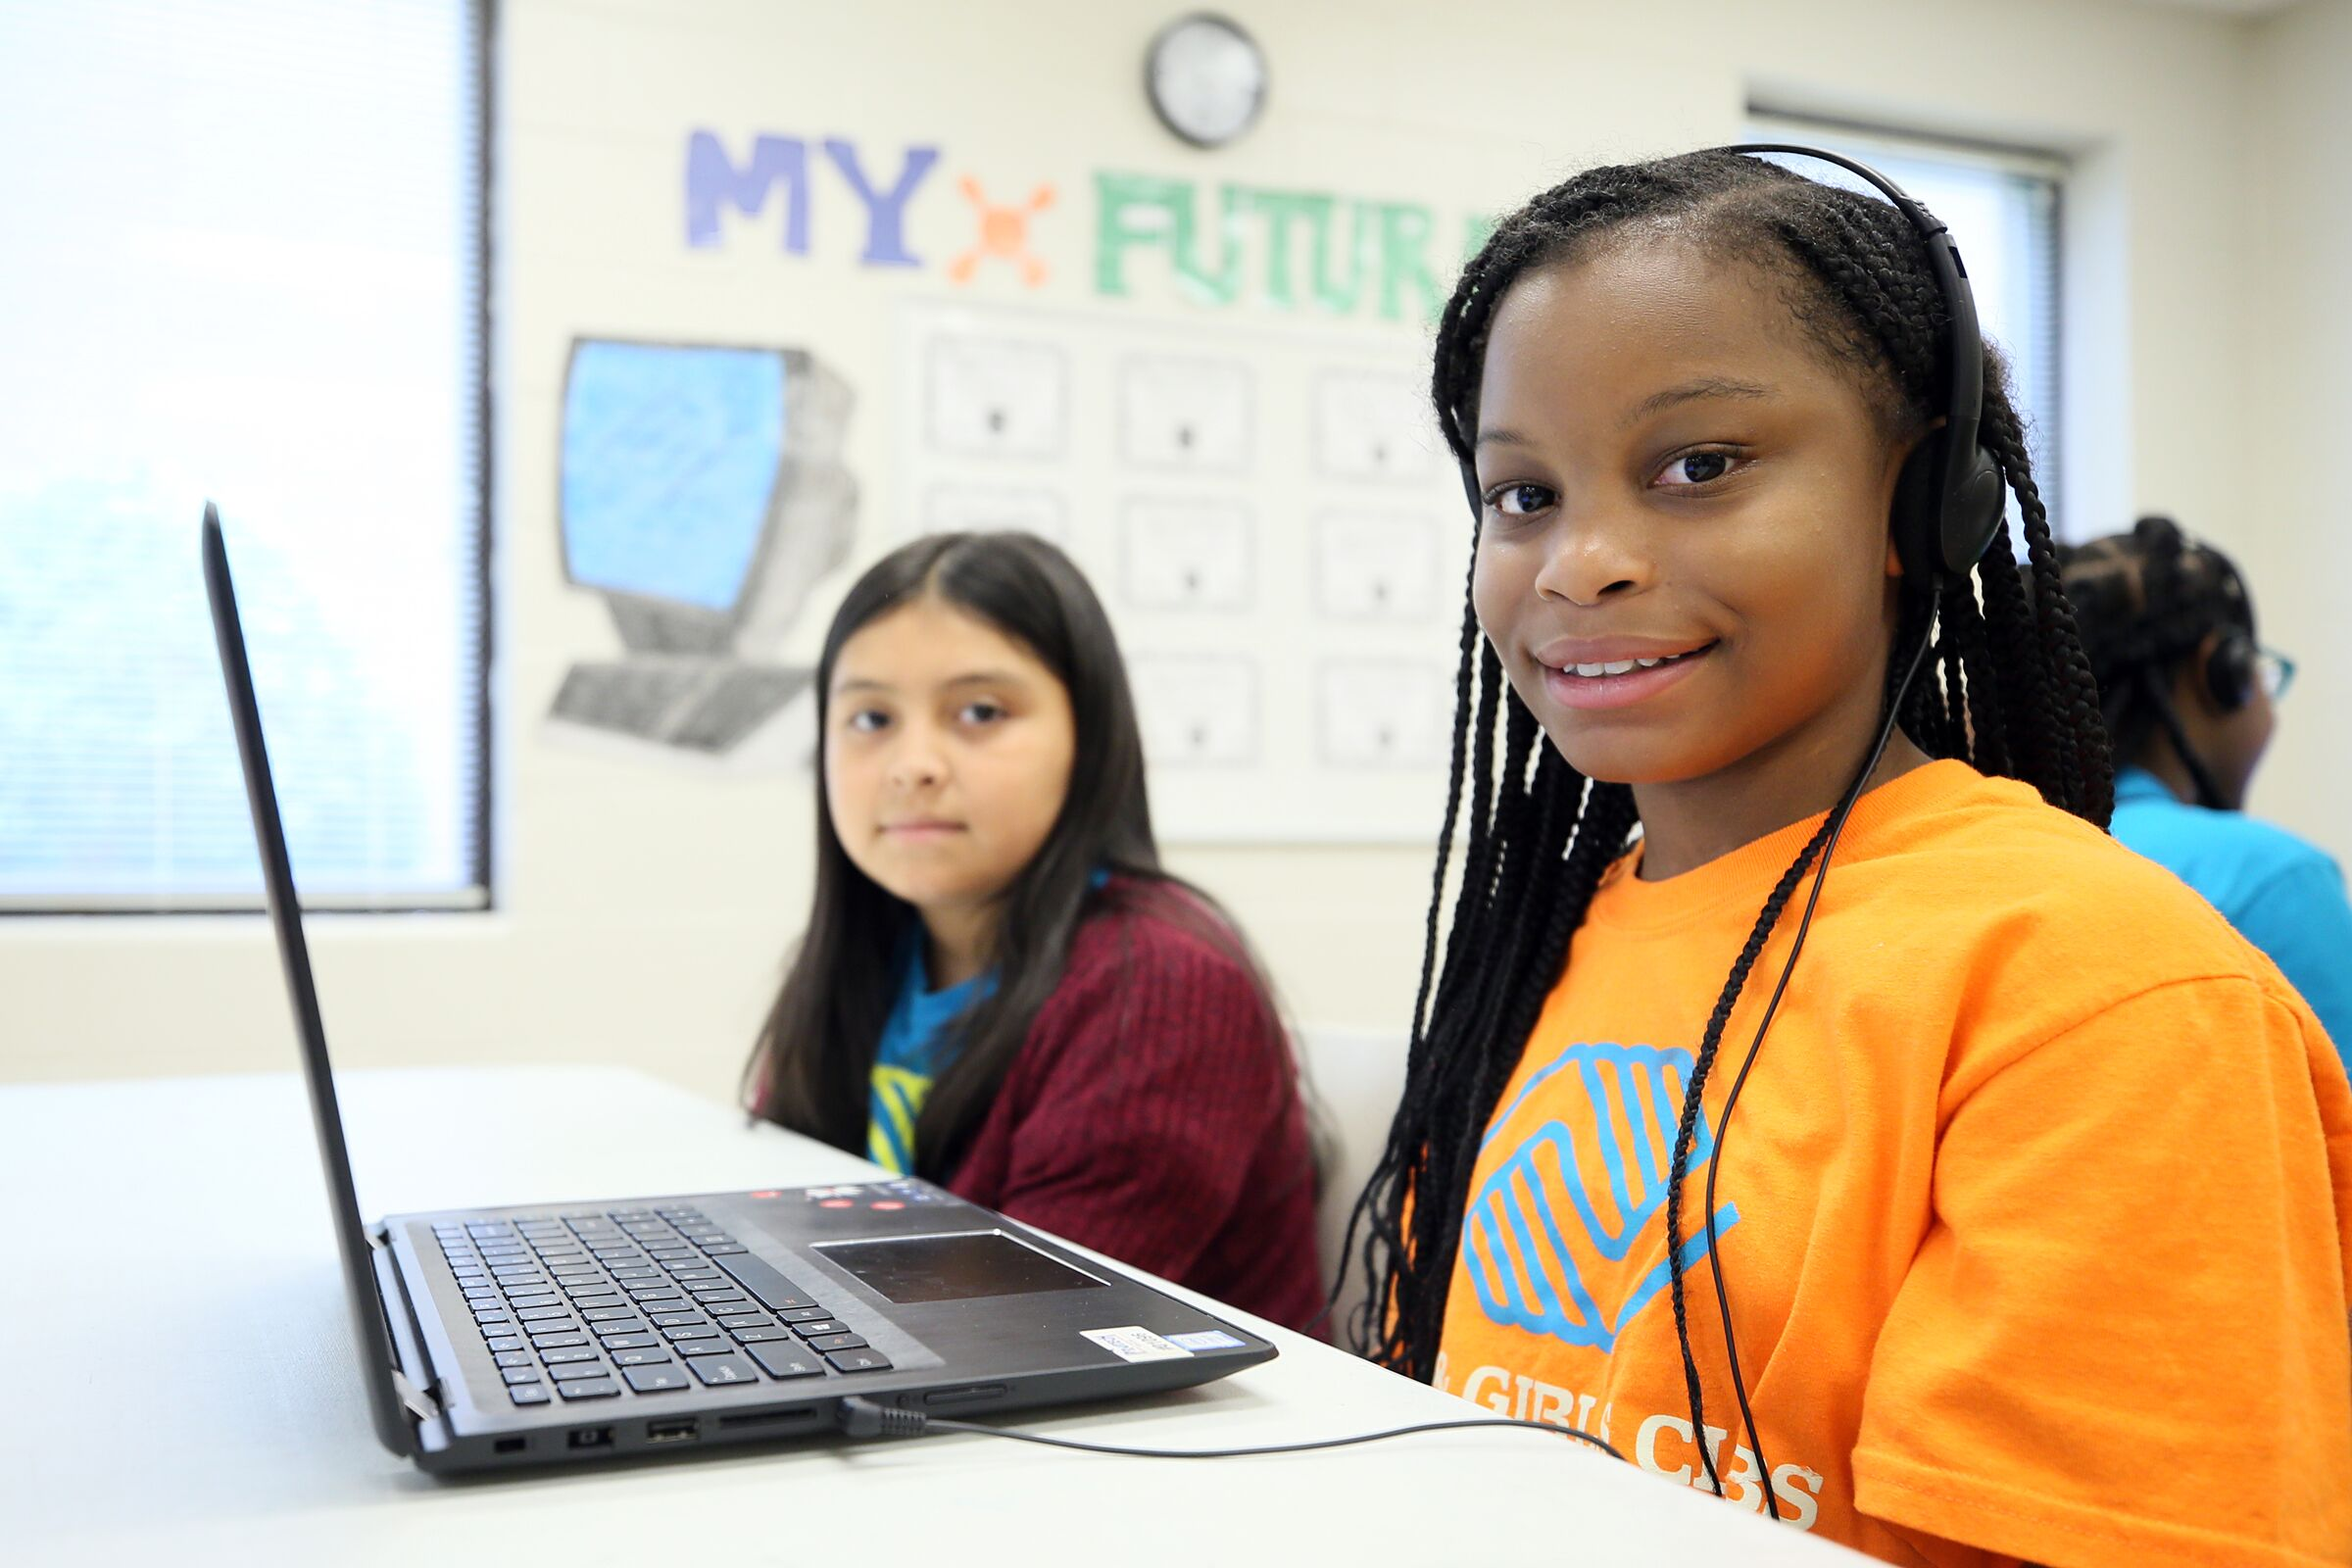 Comcast Foundation Announces $20,000 Grant to the Boys & Girls Club of Greater Memphis